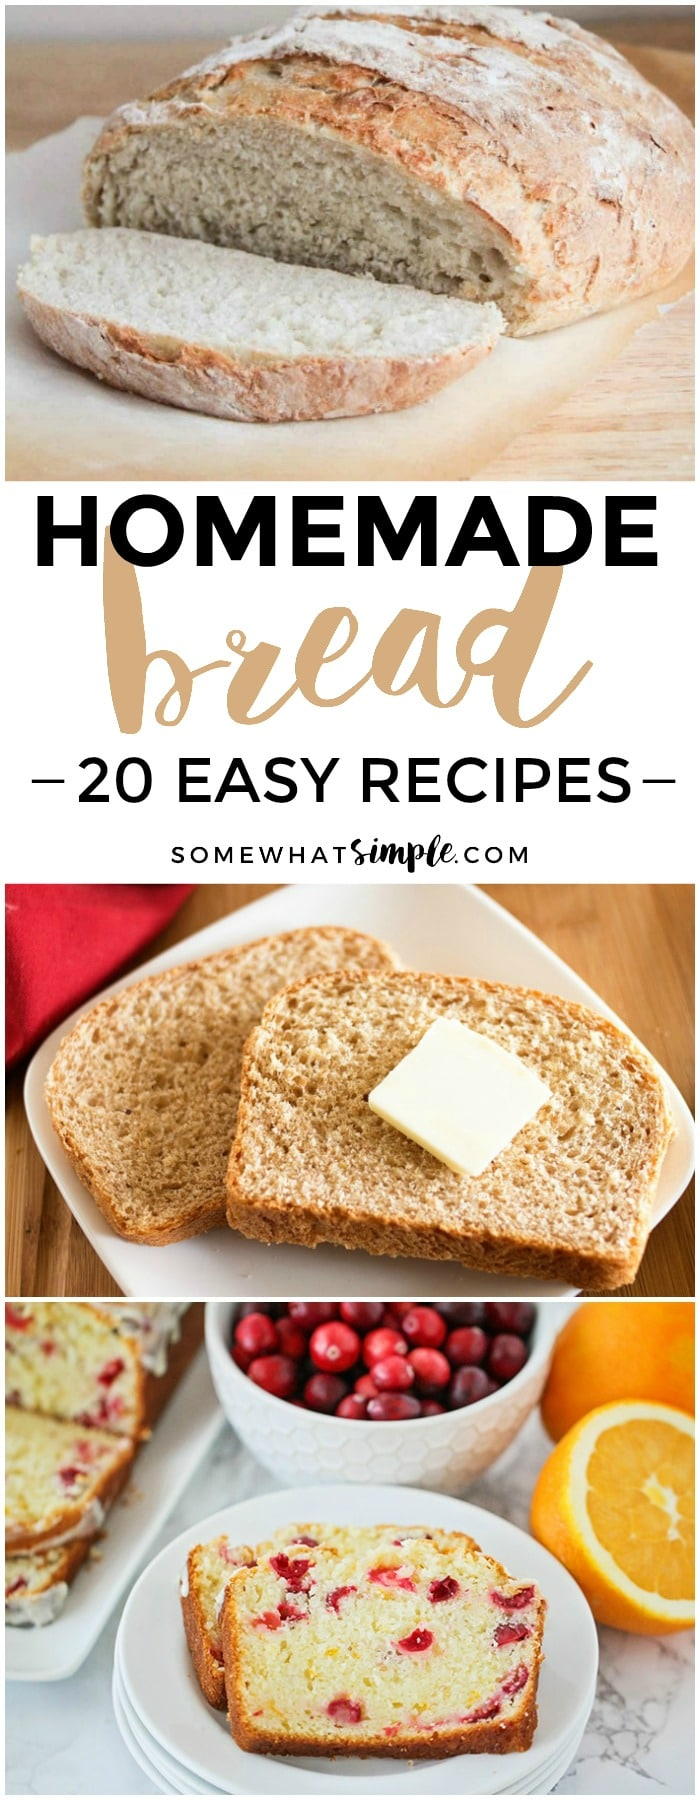 20 favorite homemade bread recipes that are simple to bake and taste fantastic!